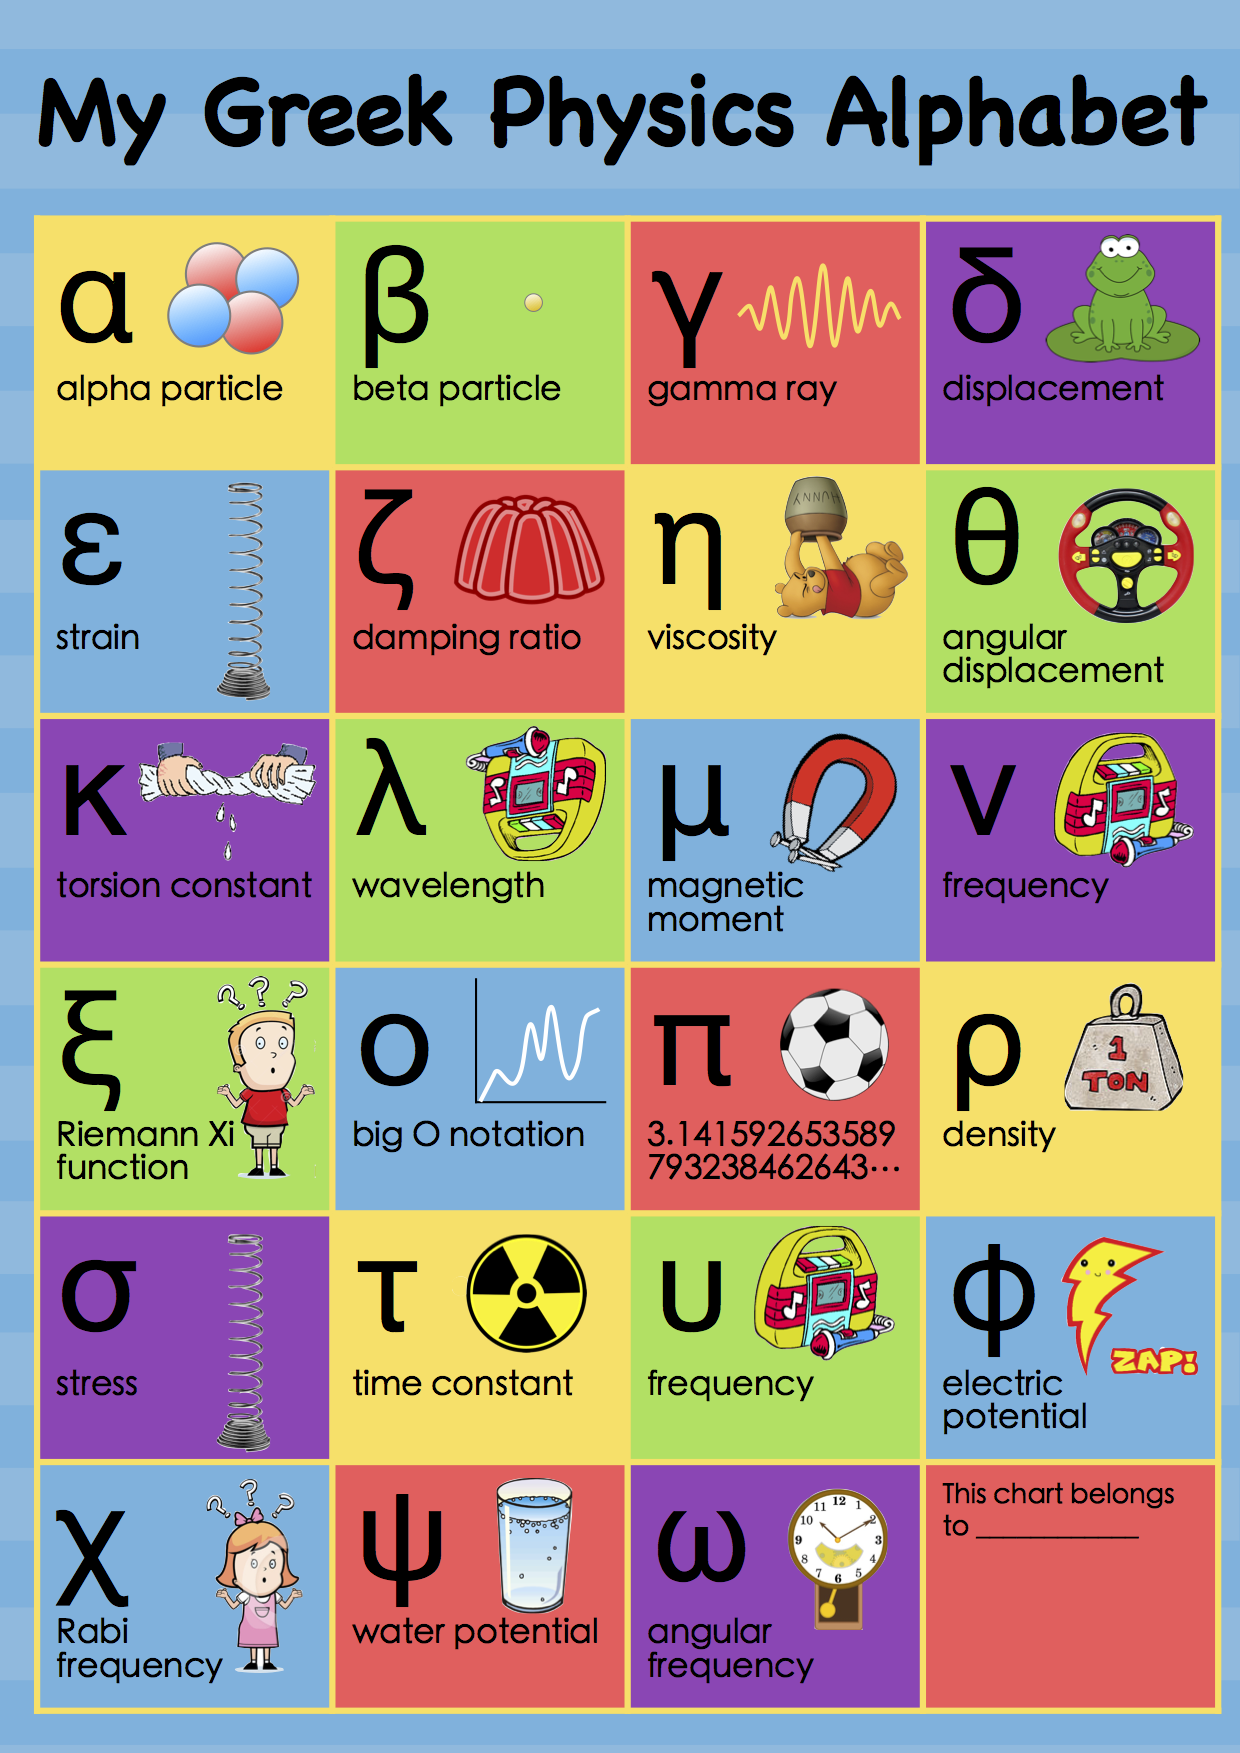 See the original poster, My First Physics Alphabet , here .